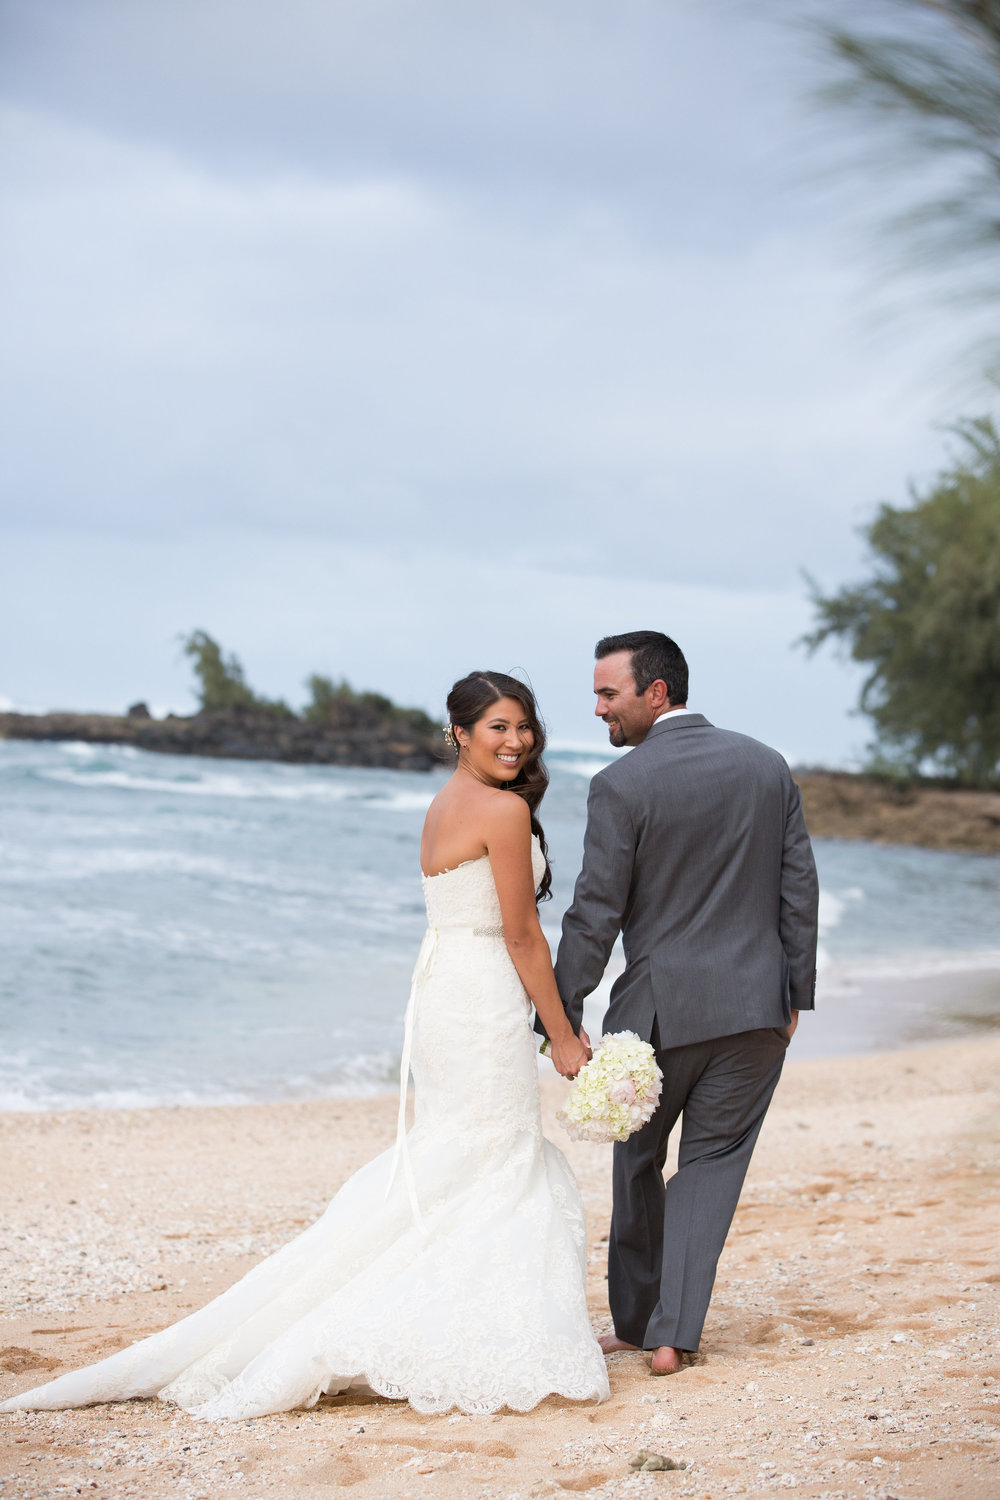 david kim photography oahu wedding 10.jpg